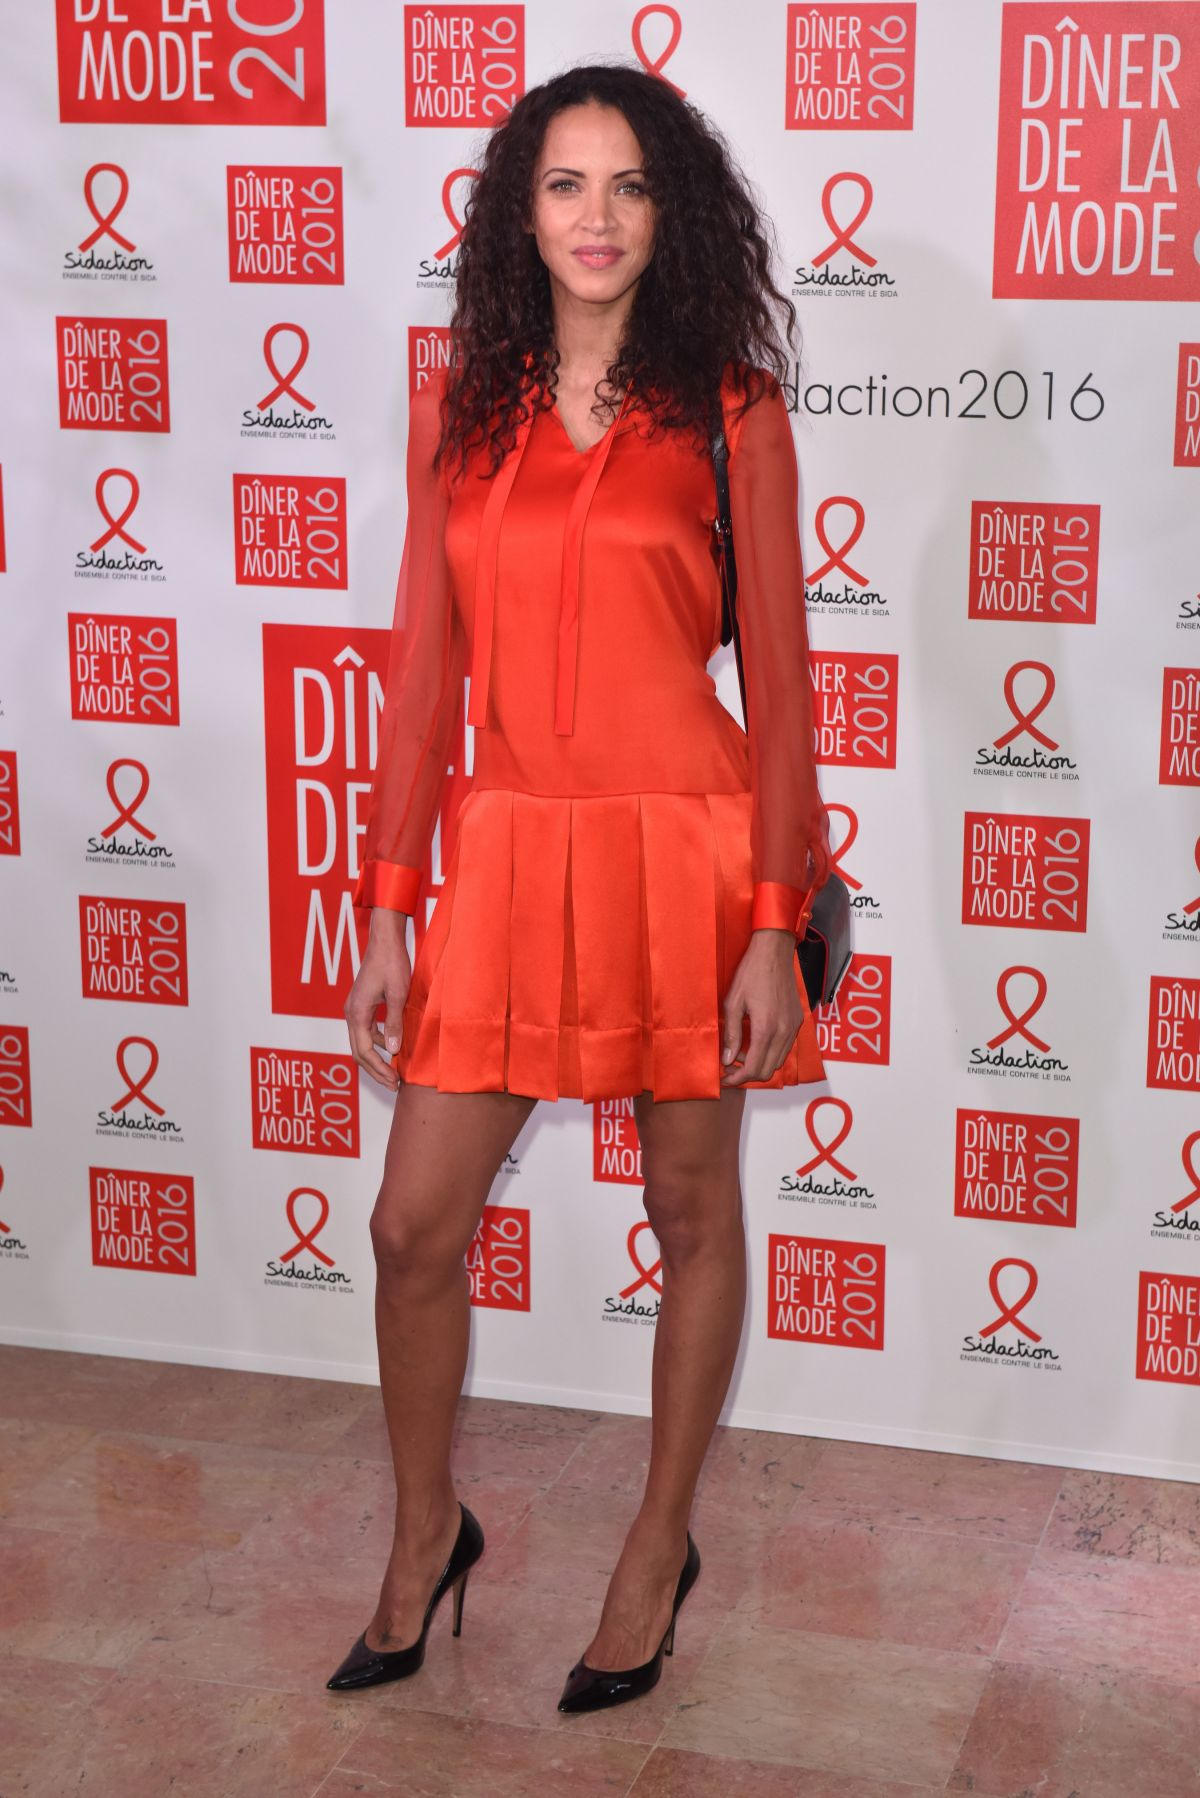 NOEMIE LENOIR at Sidaction Gala Dinner 2016 in Paris 01/28/2016